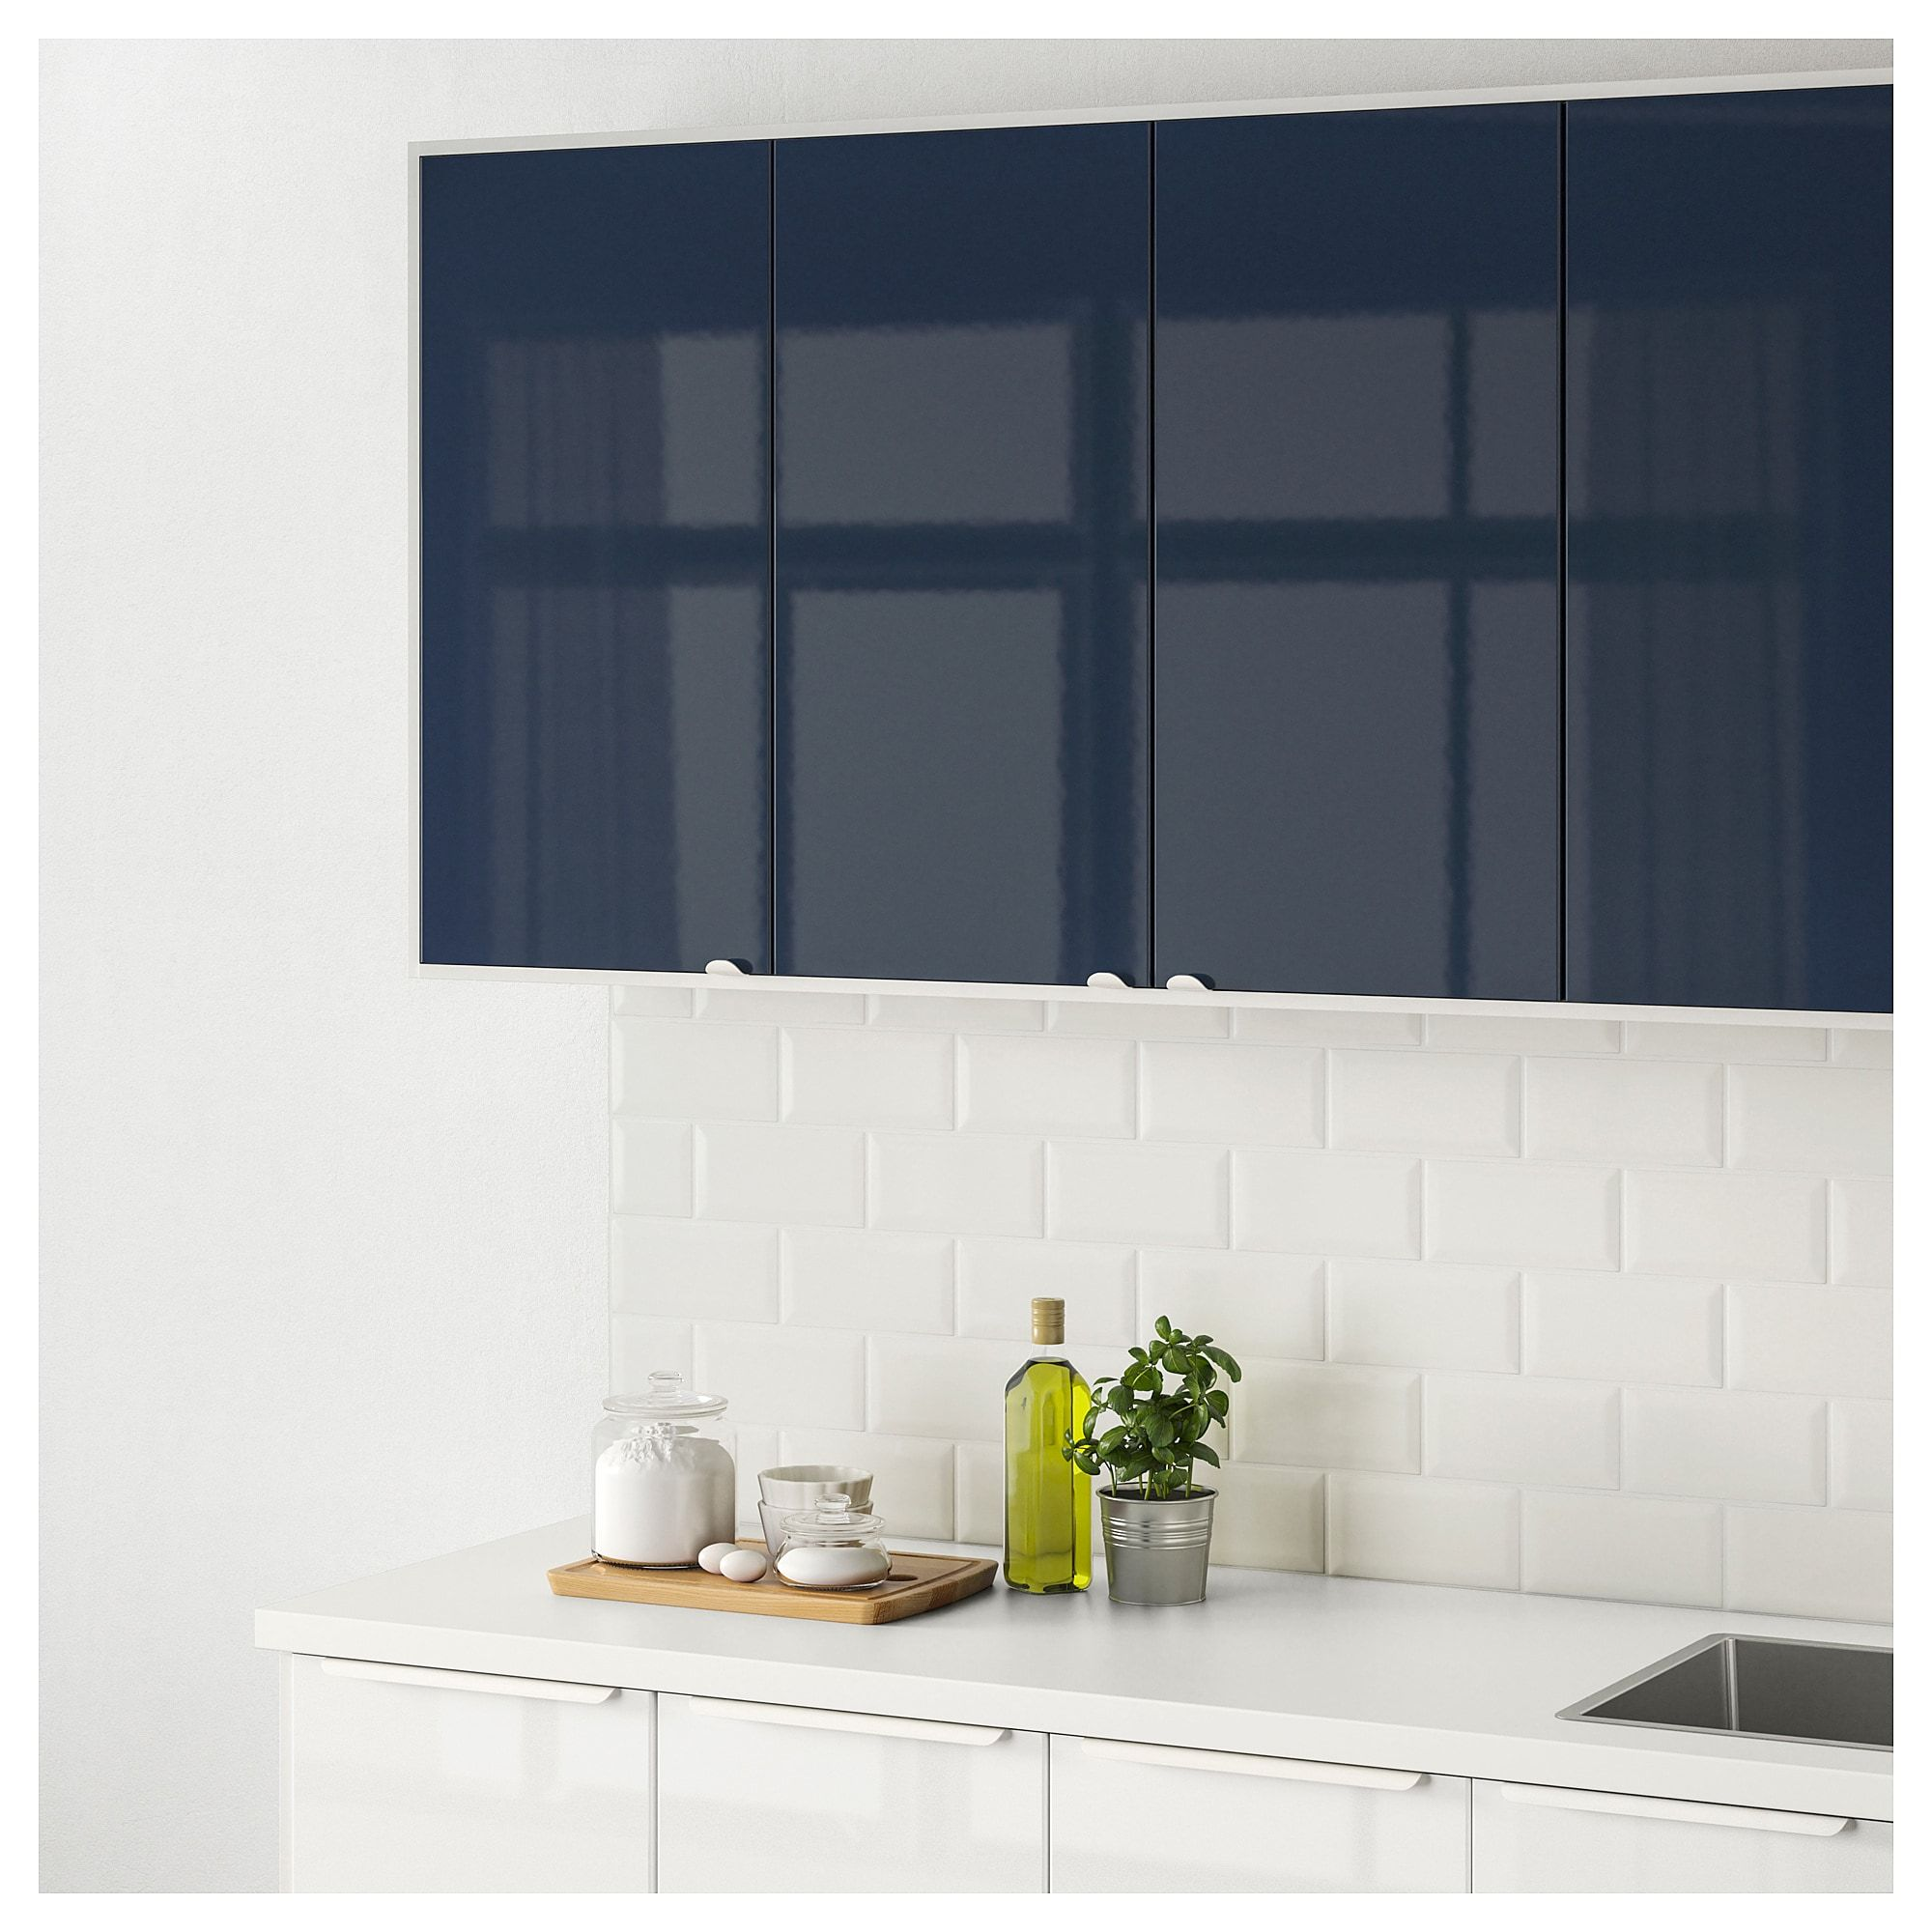 Ikea Küche Järsta JÄrsta Door High Gloss Black Blue In 2019 Meg Black Kitchens